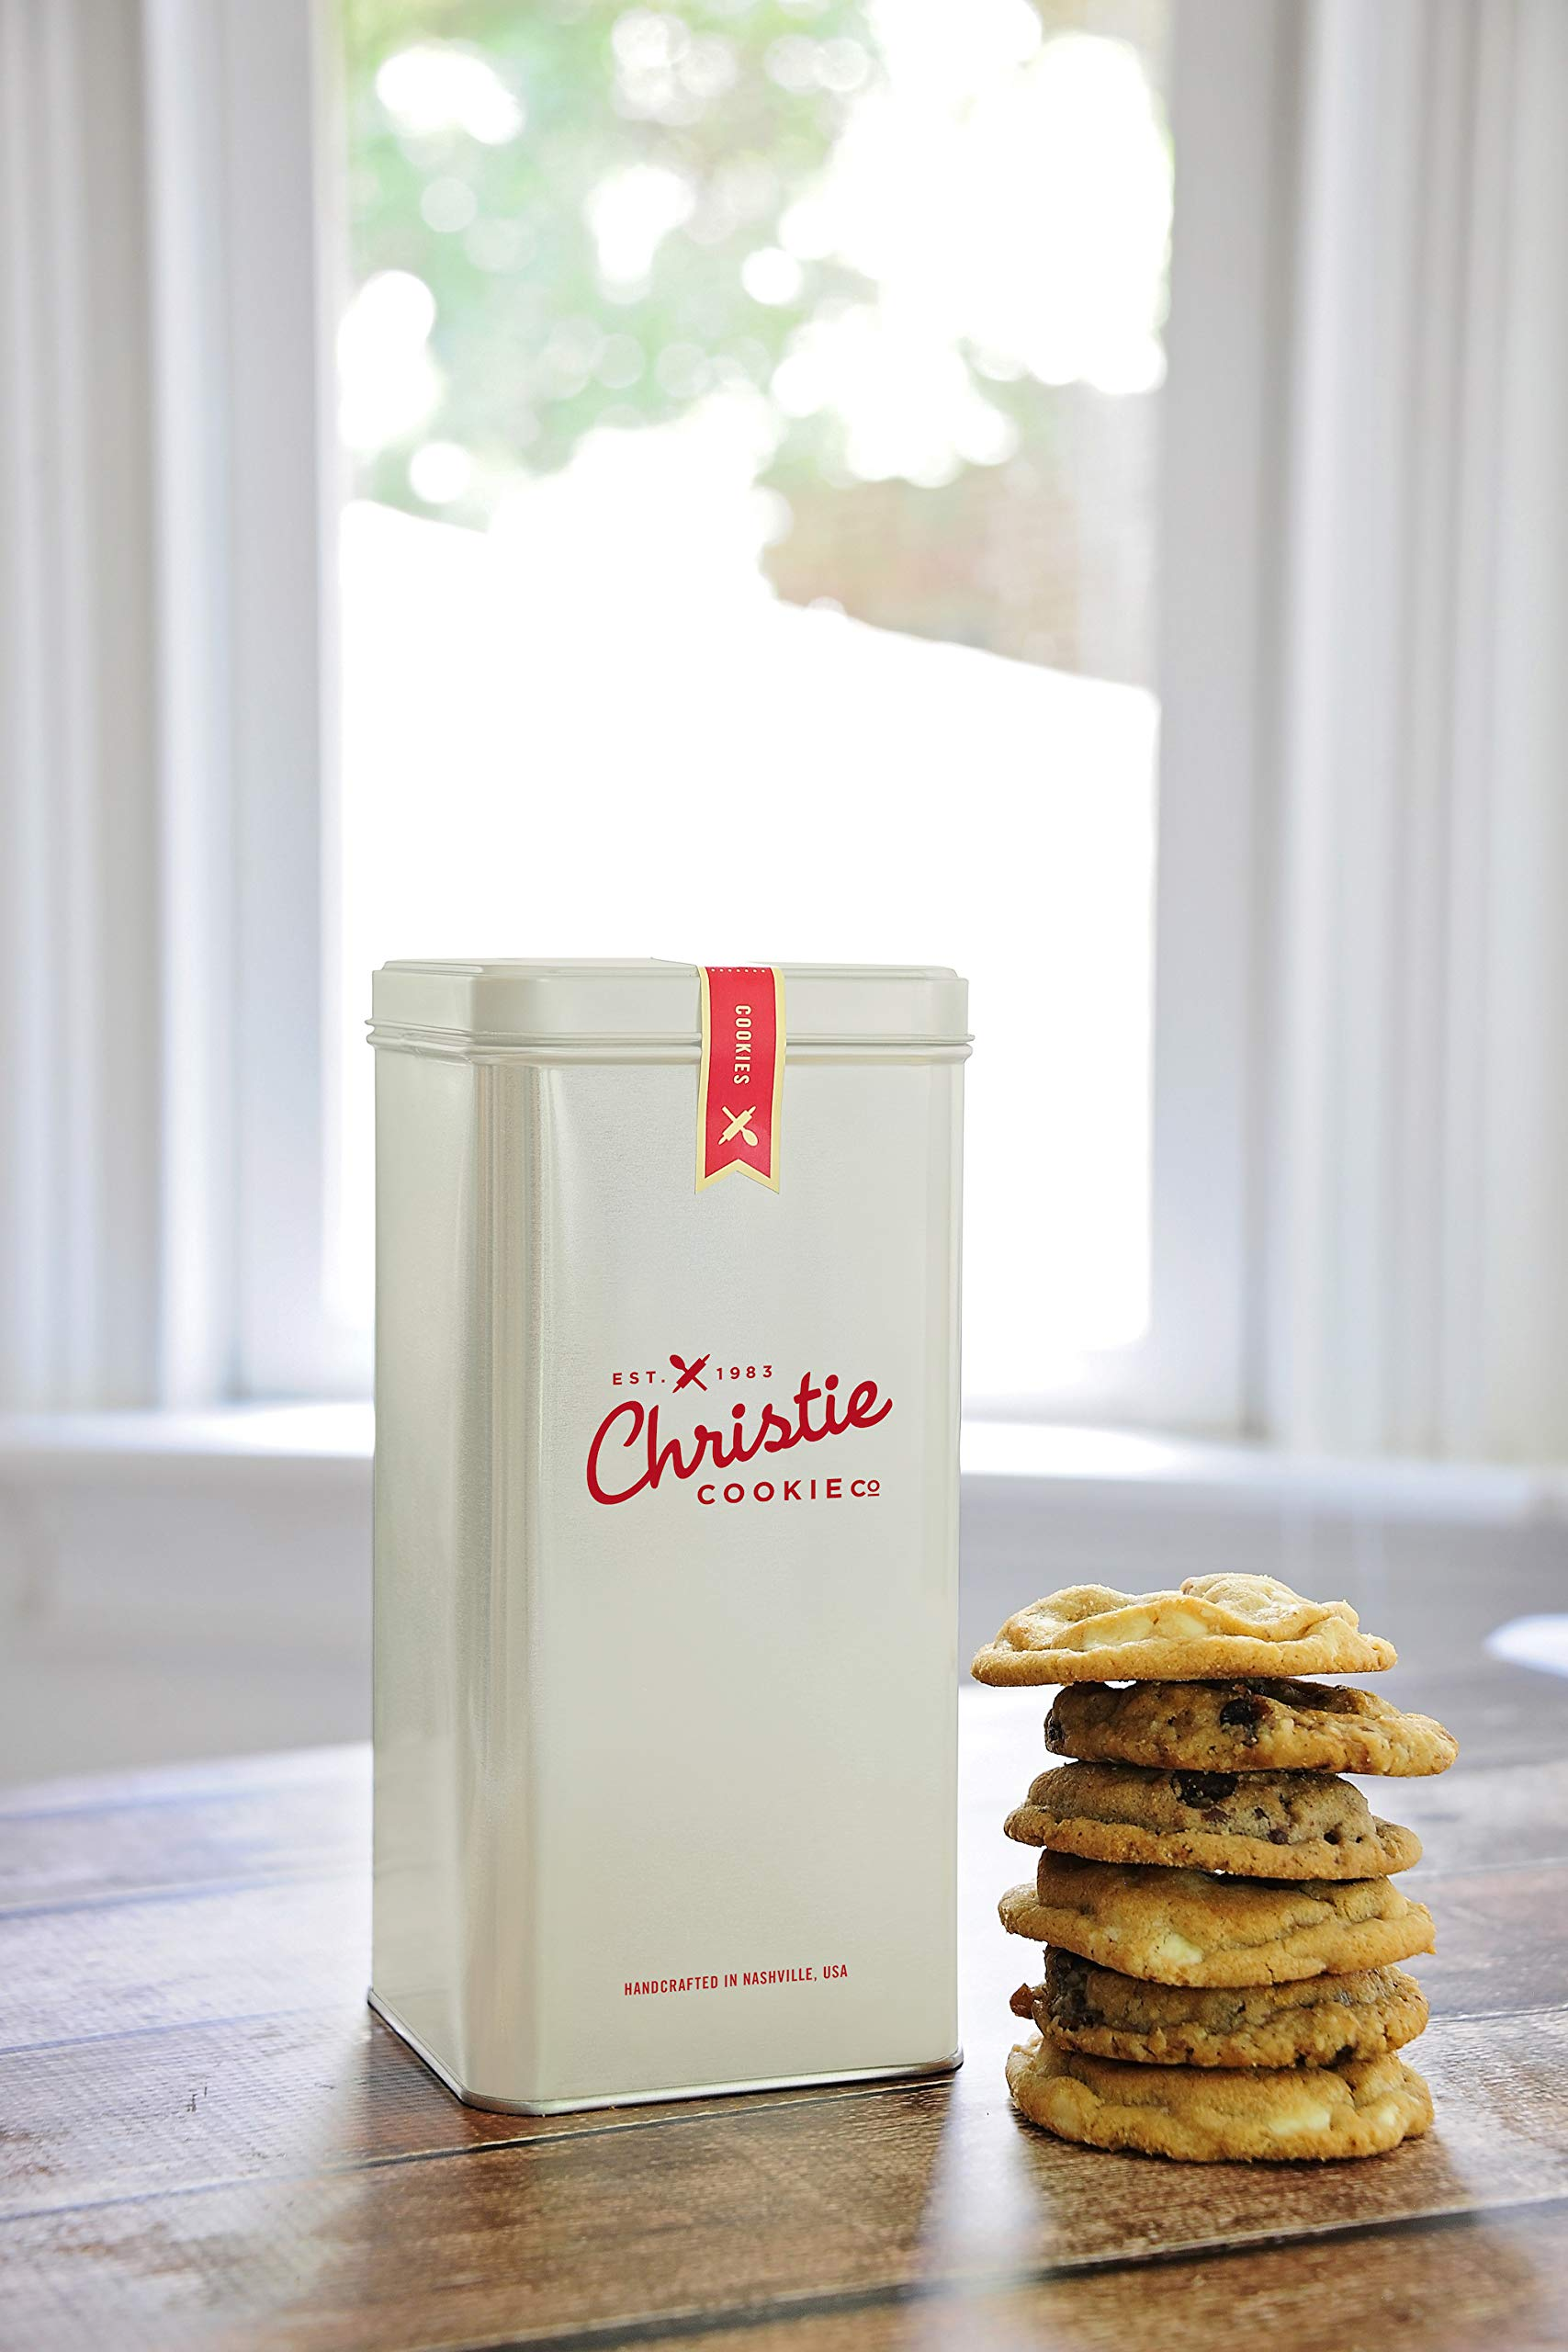 Christie Cookies, Gourmet Assorted Cookies, 12 Fresh-Baked Cookies in Cream Tin, No Added Preservatives, 100% Real Butter, Holiday & Corporate Gift Tin, Birthday Gift Idea for Men & Women